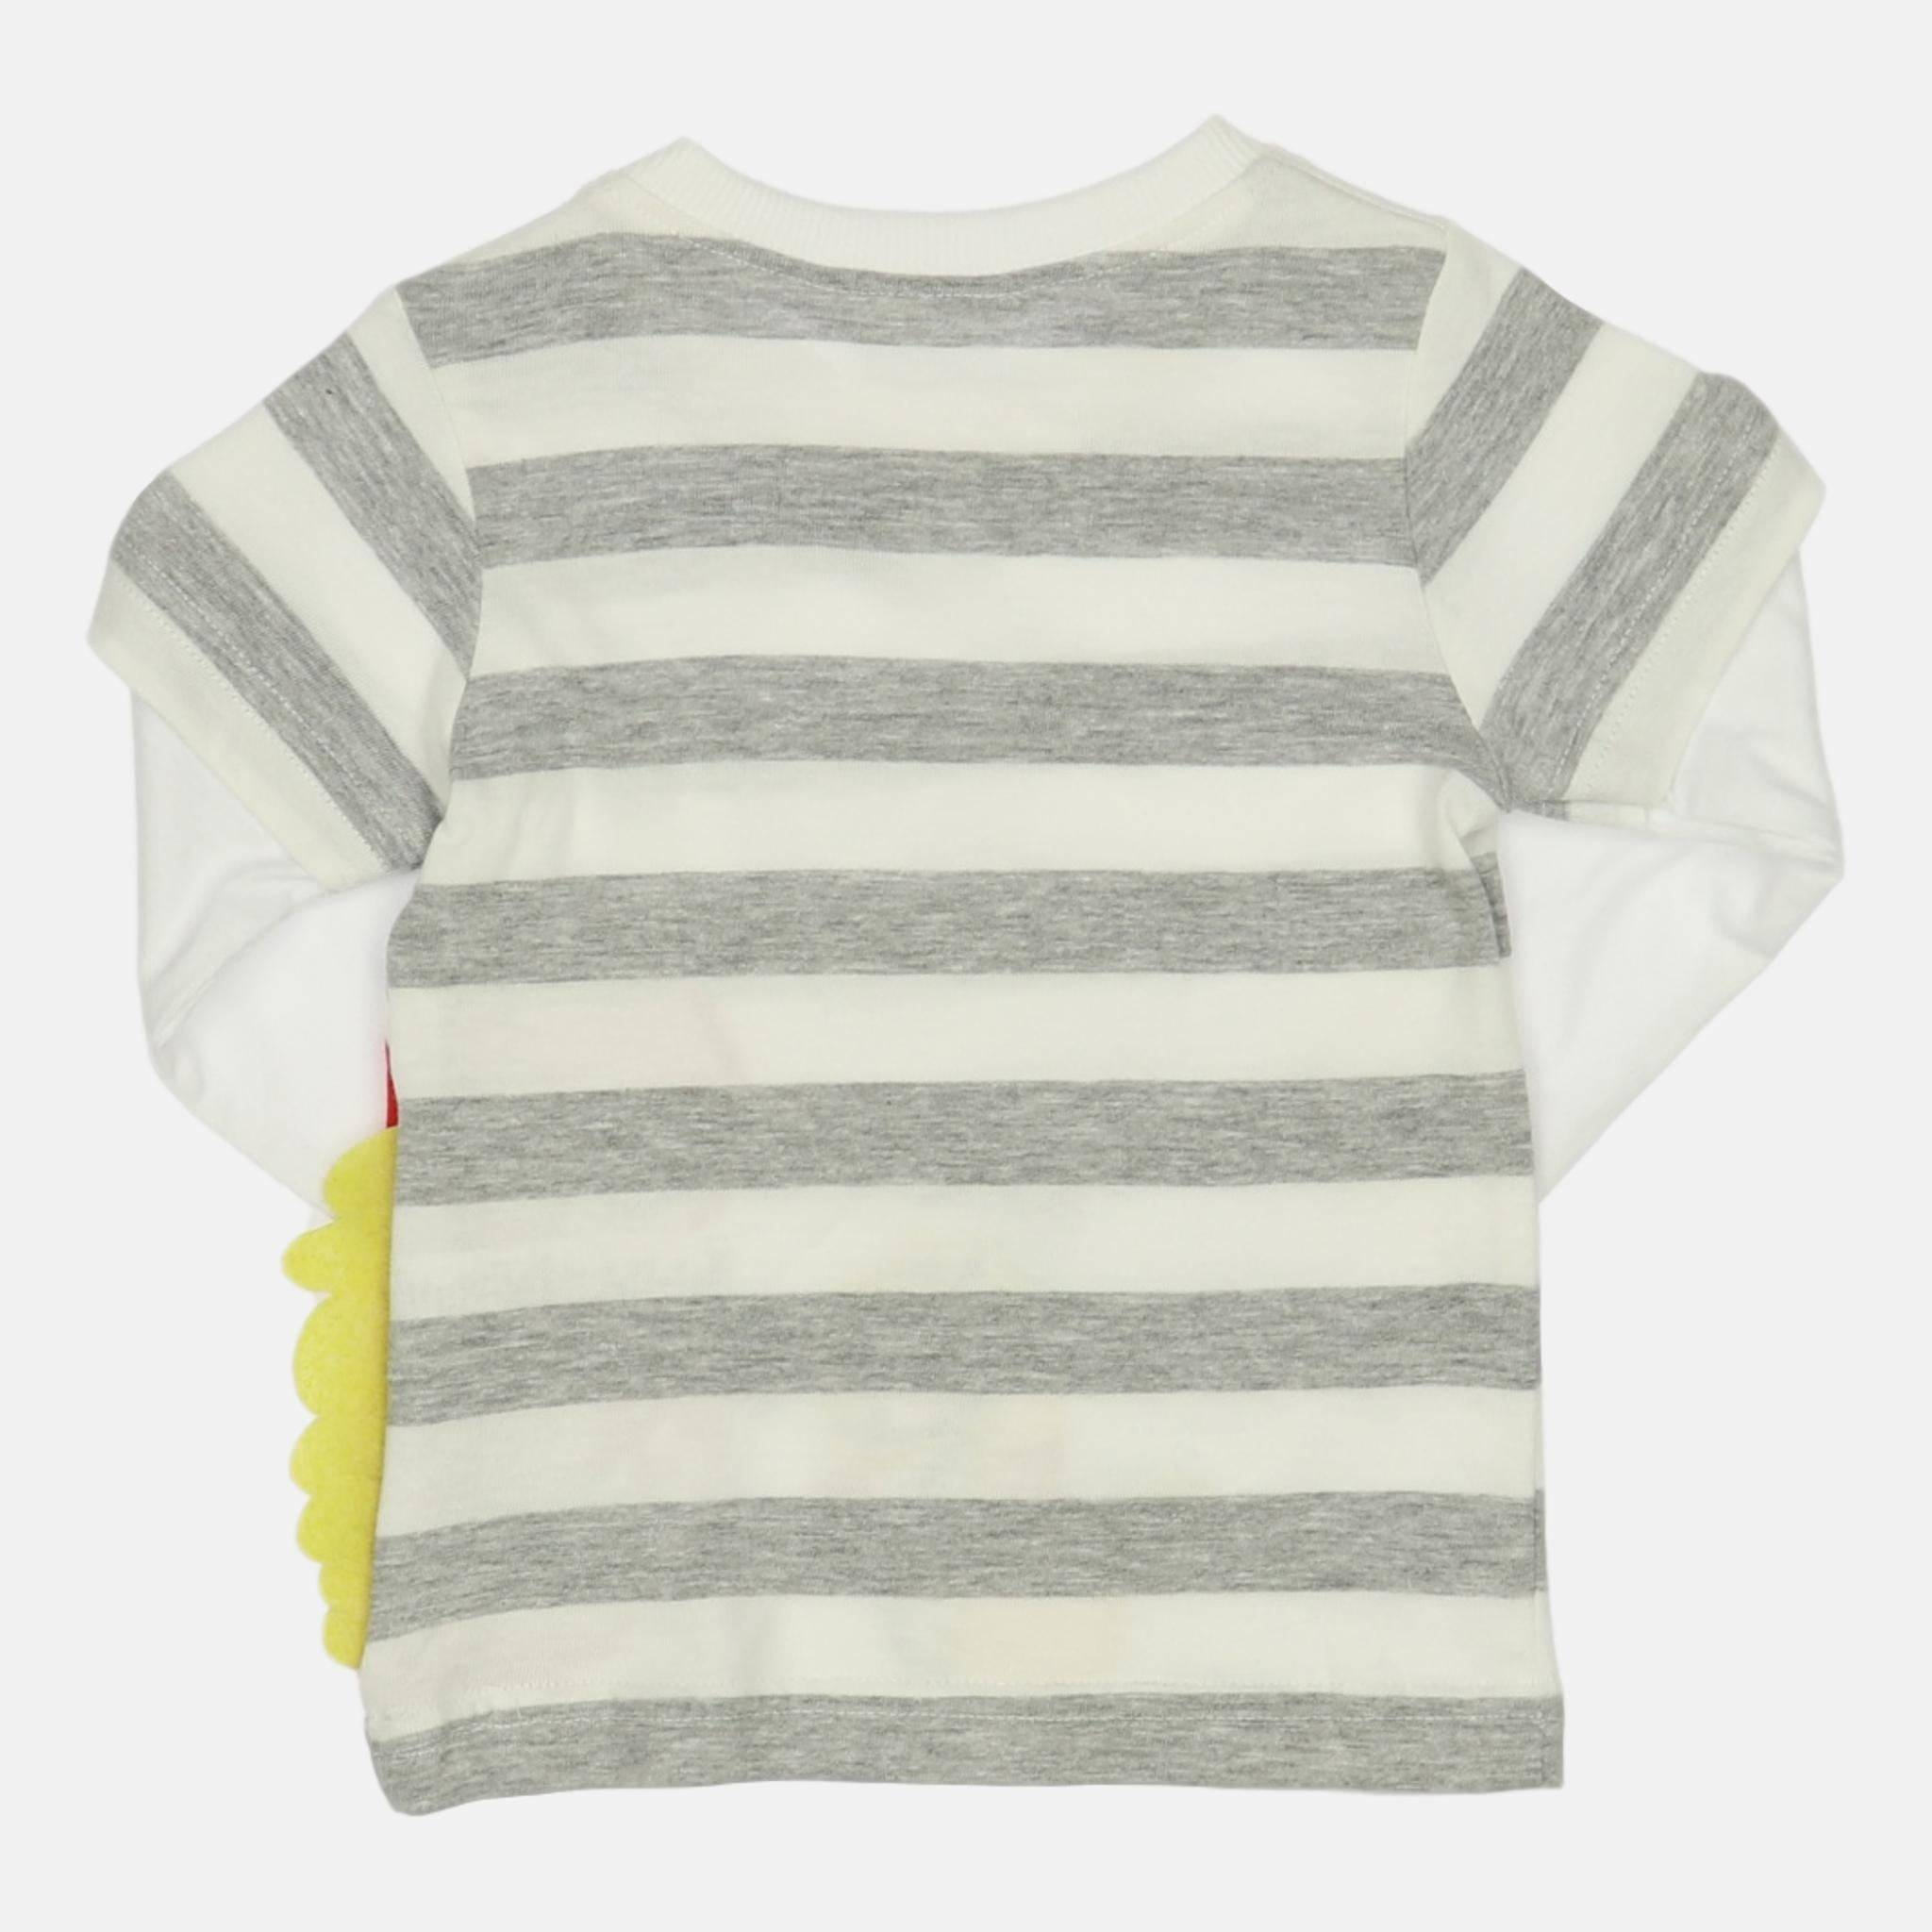 Long Sleeve T-Shirt, 9-12 Months